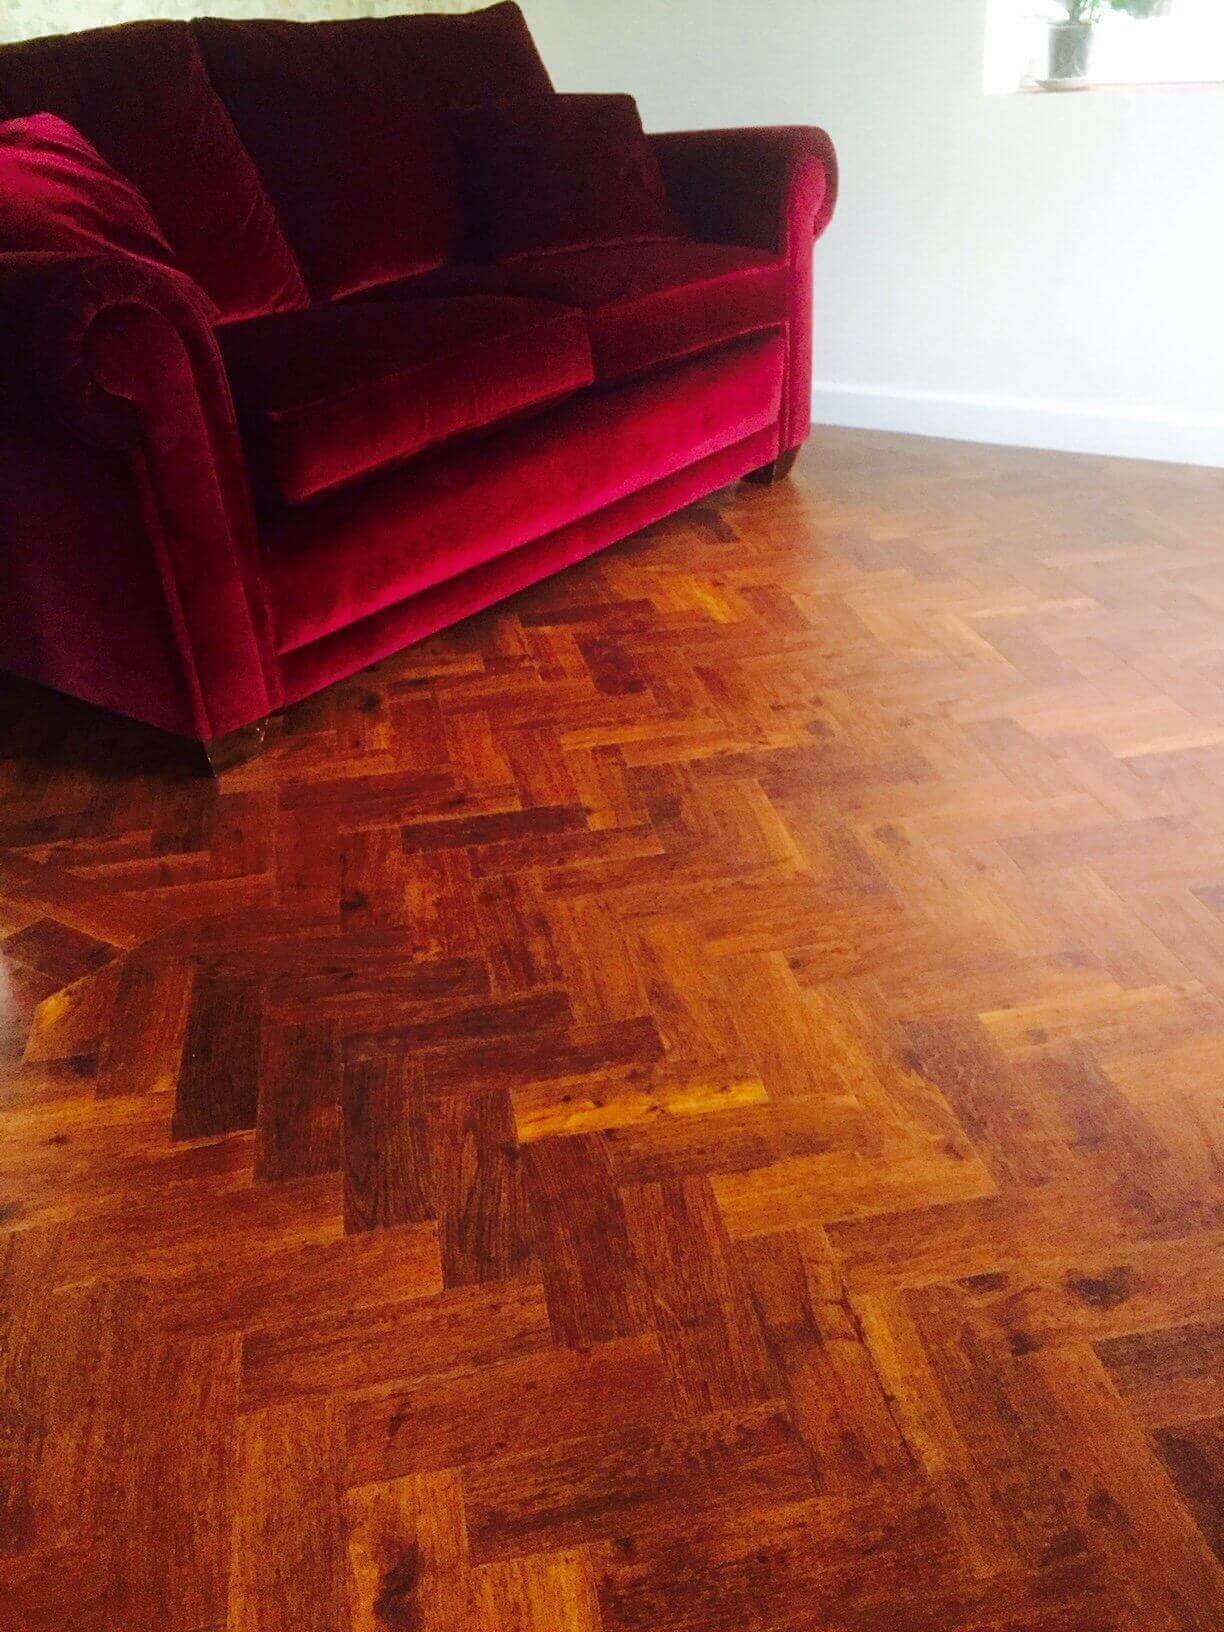 Red velvet sofa on parquet flooring